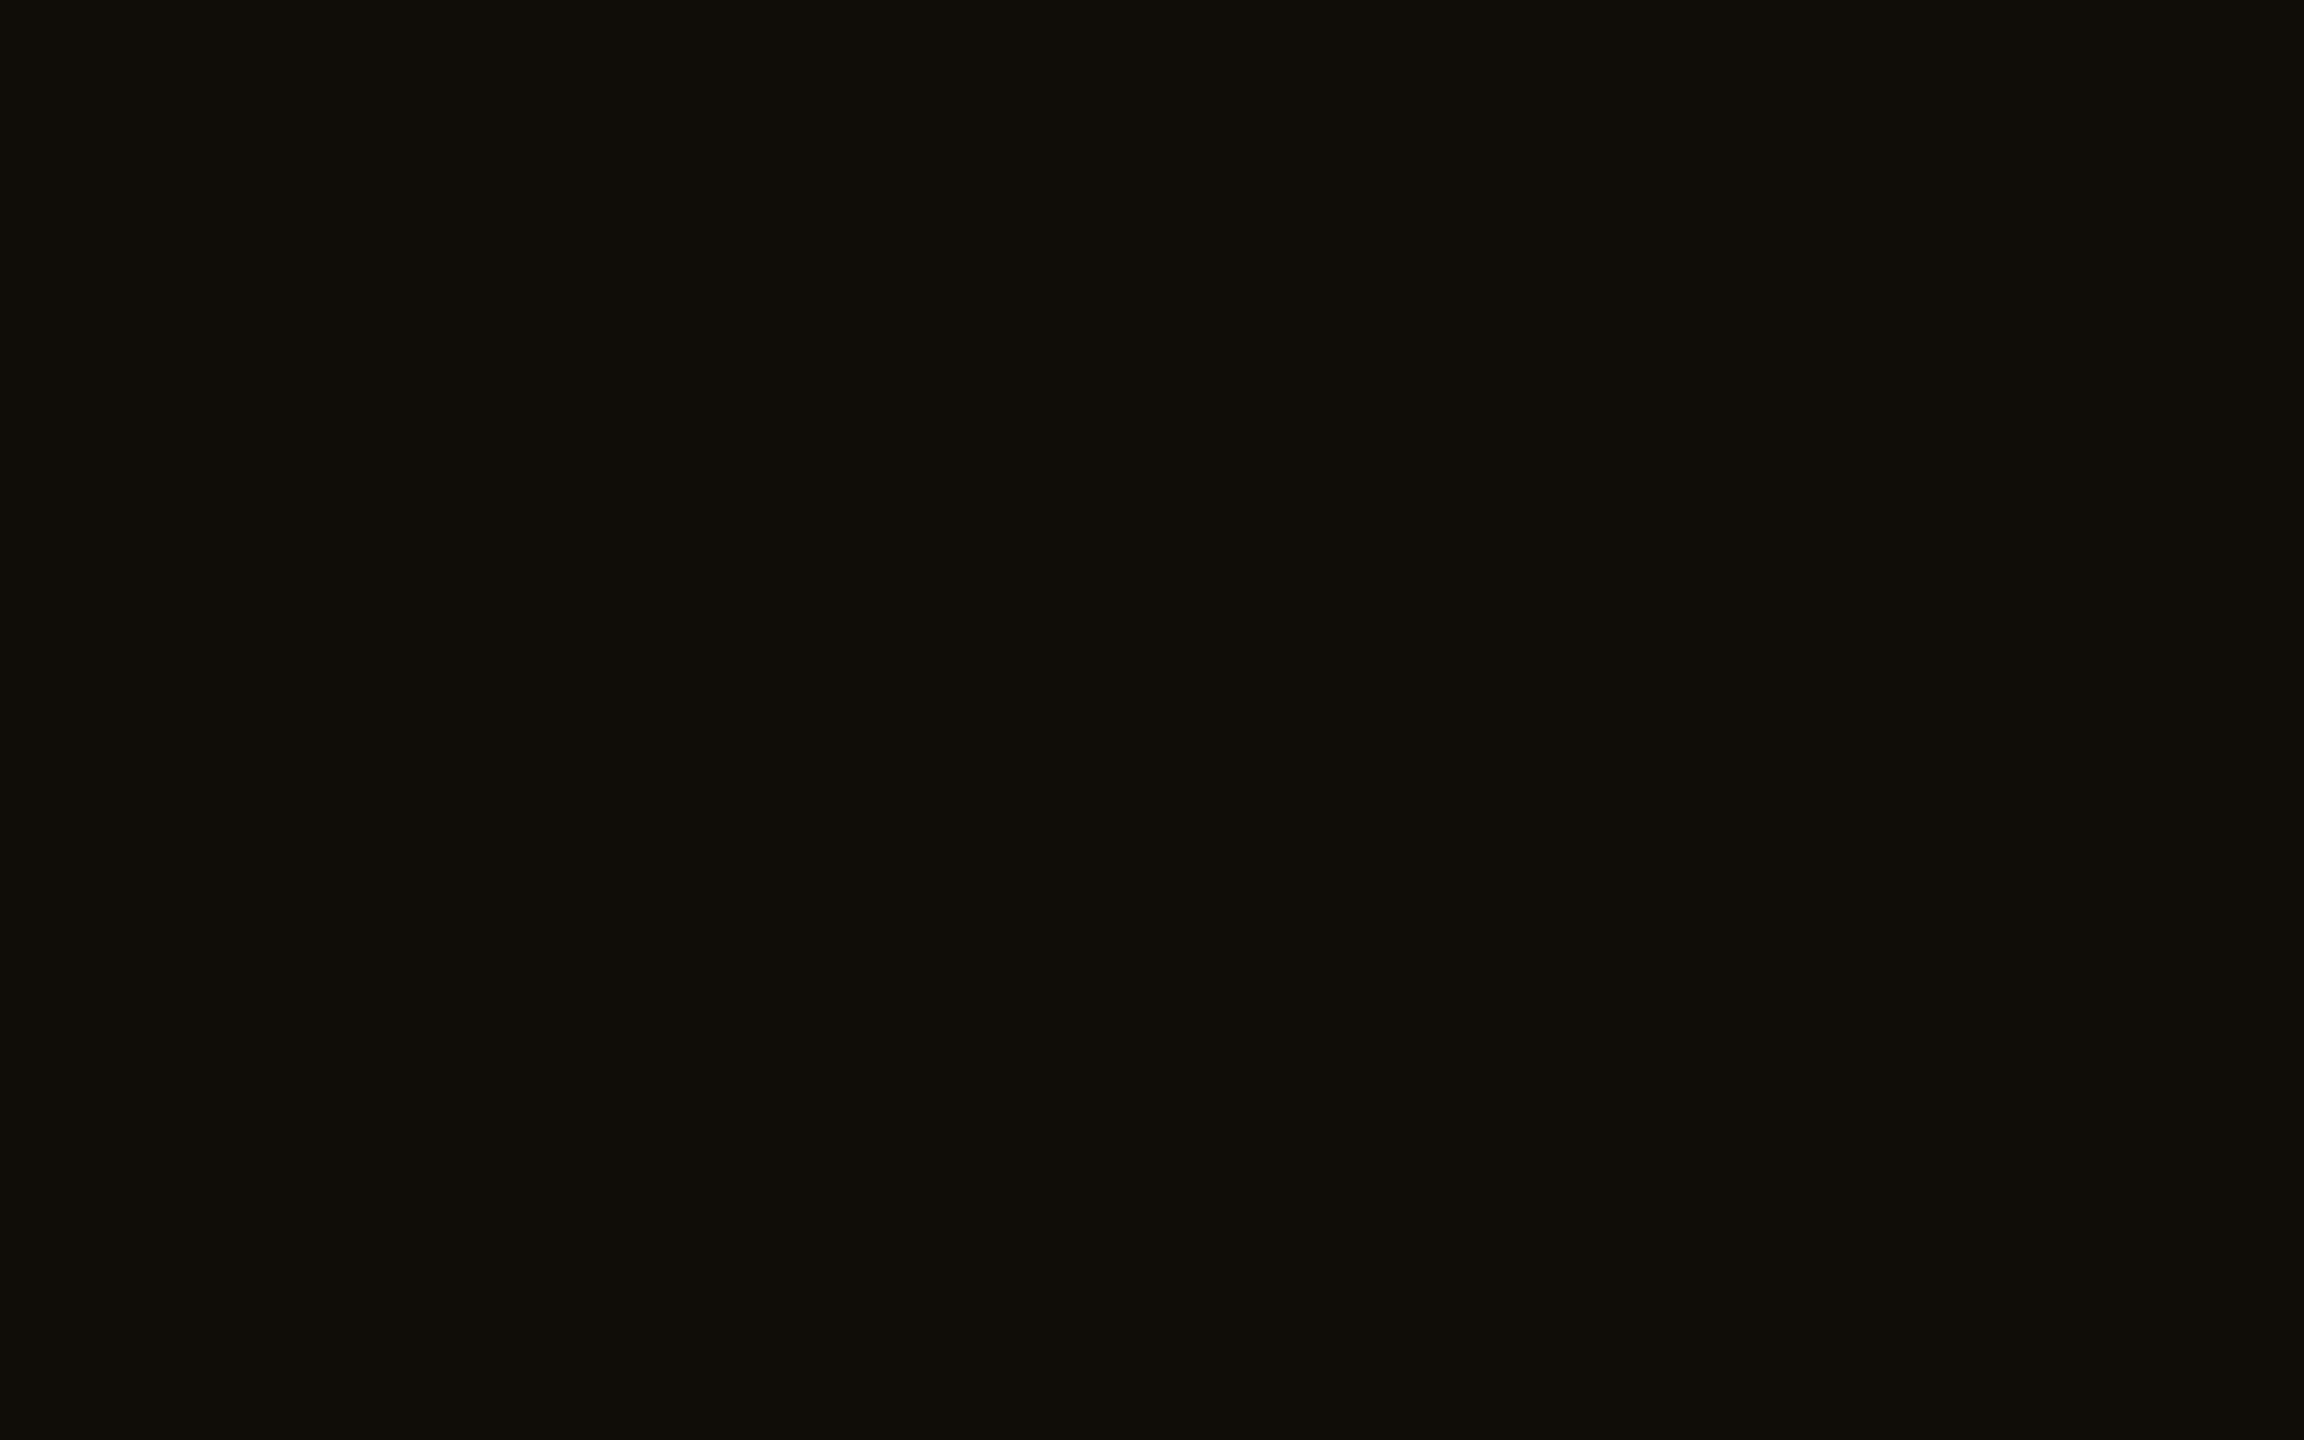 2304x1440 Smoky Black Solid Color Background